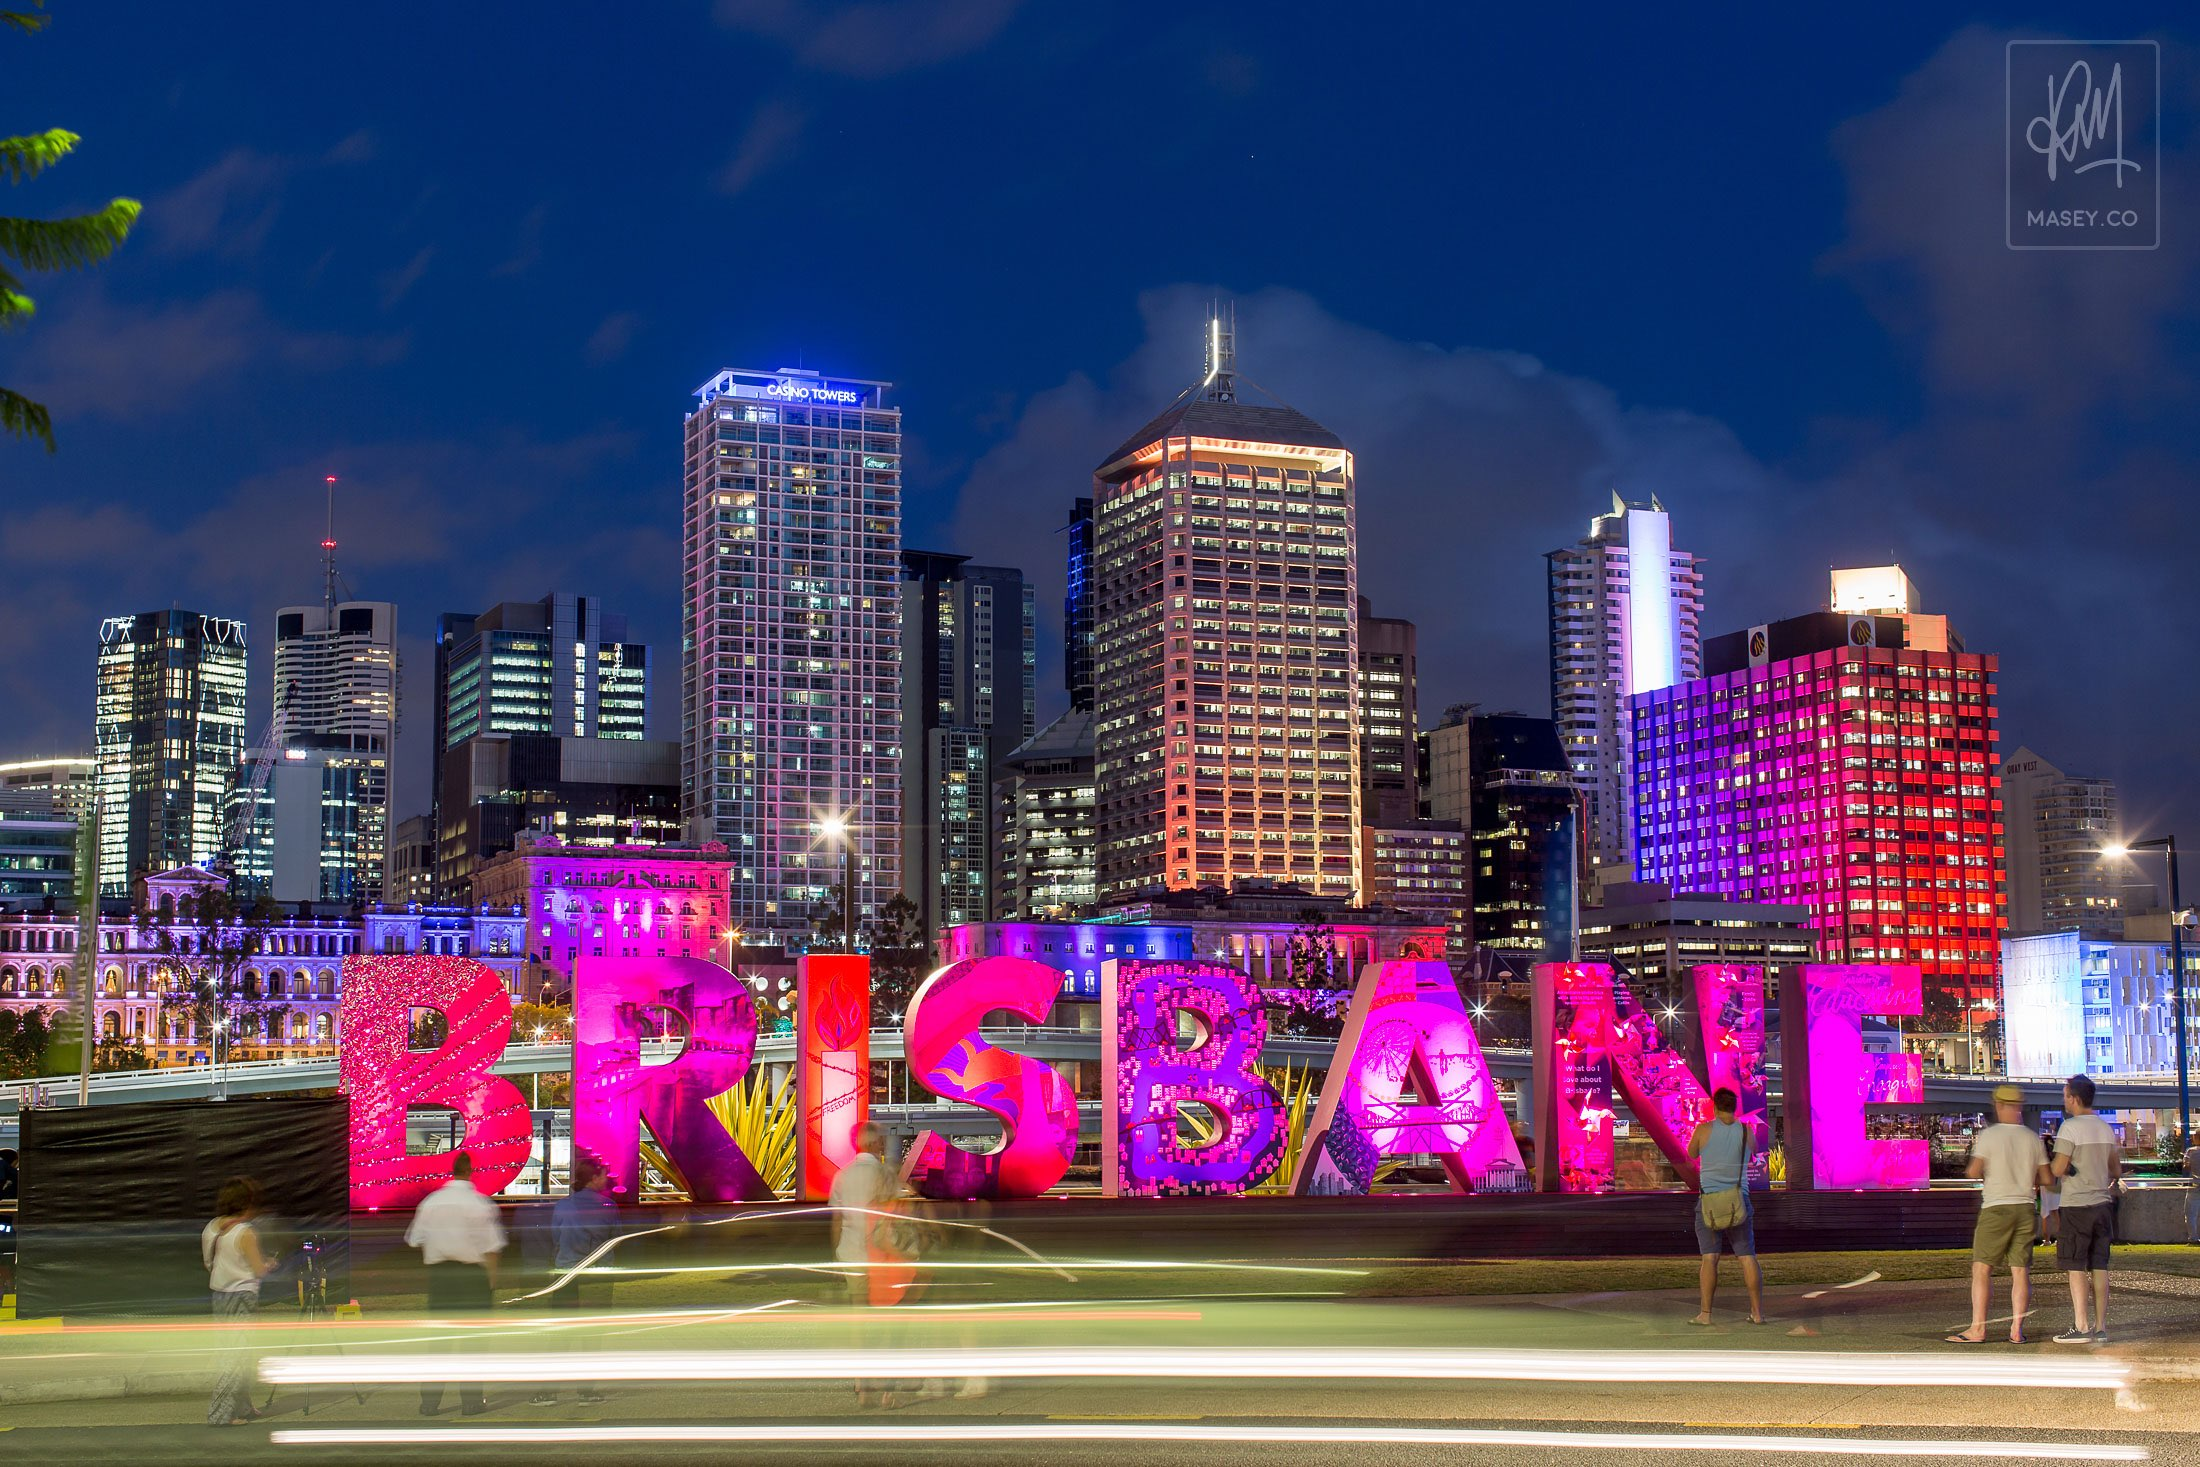 The ever popular Brisbane sign visited by over 25,000 people during the G20 period.